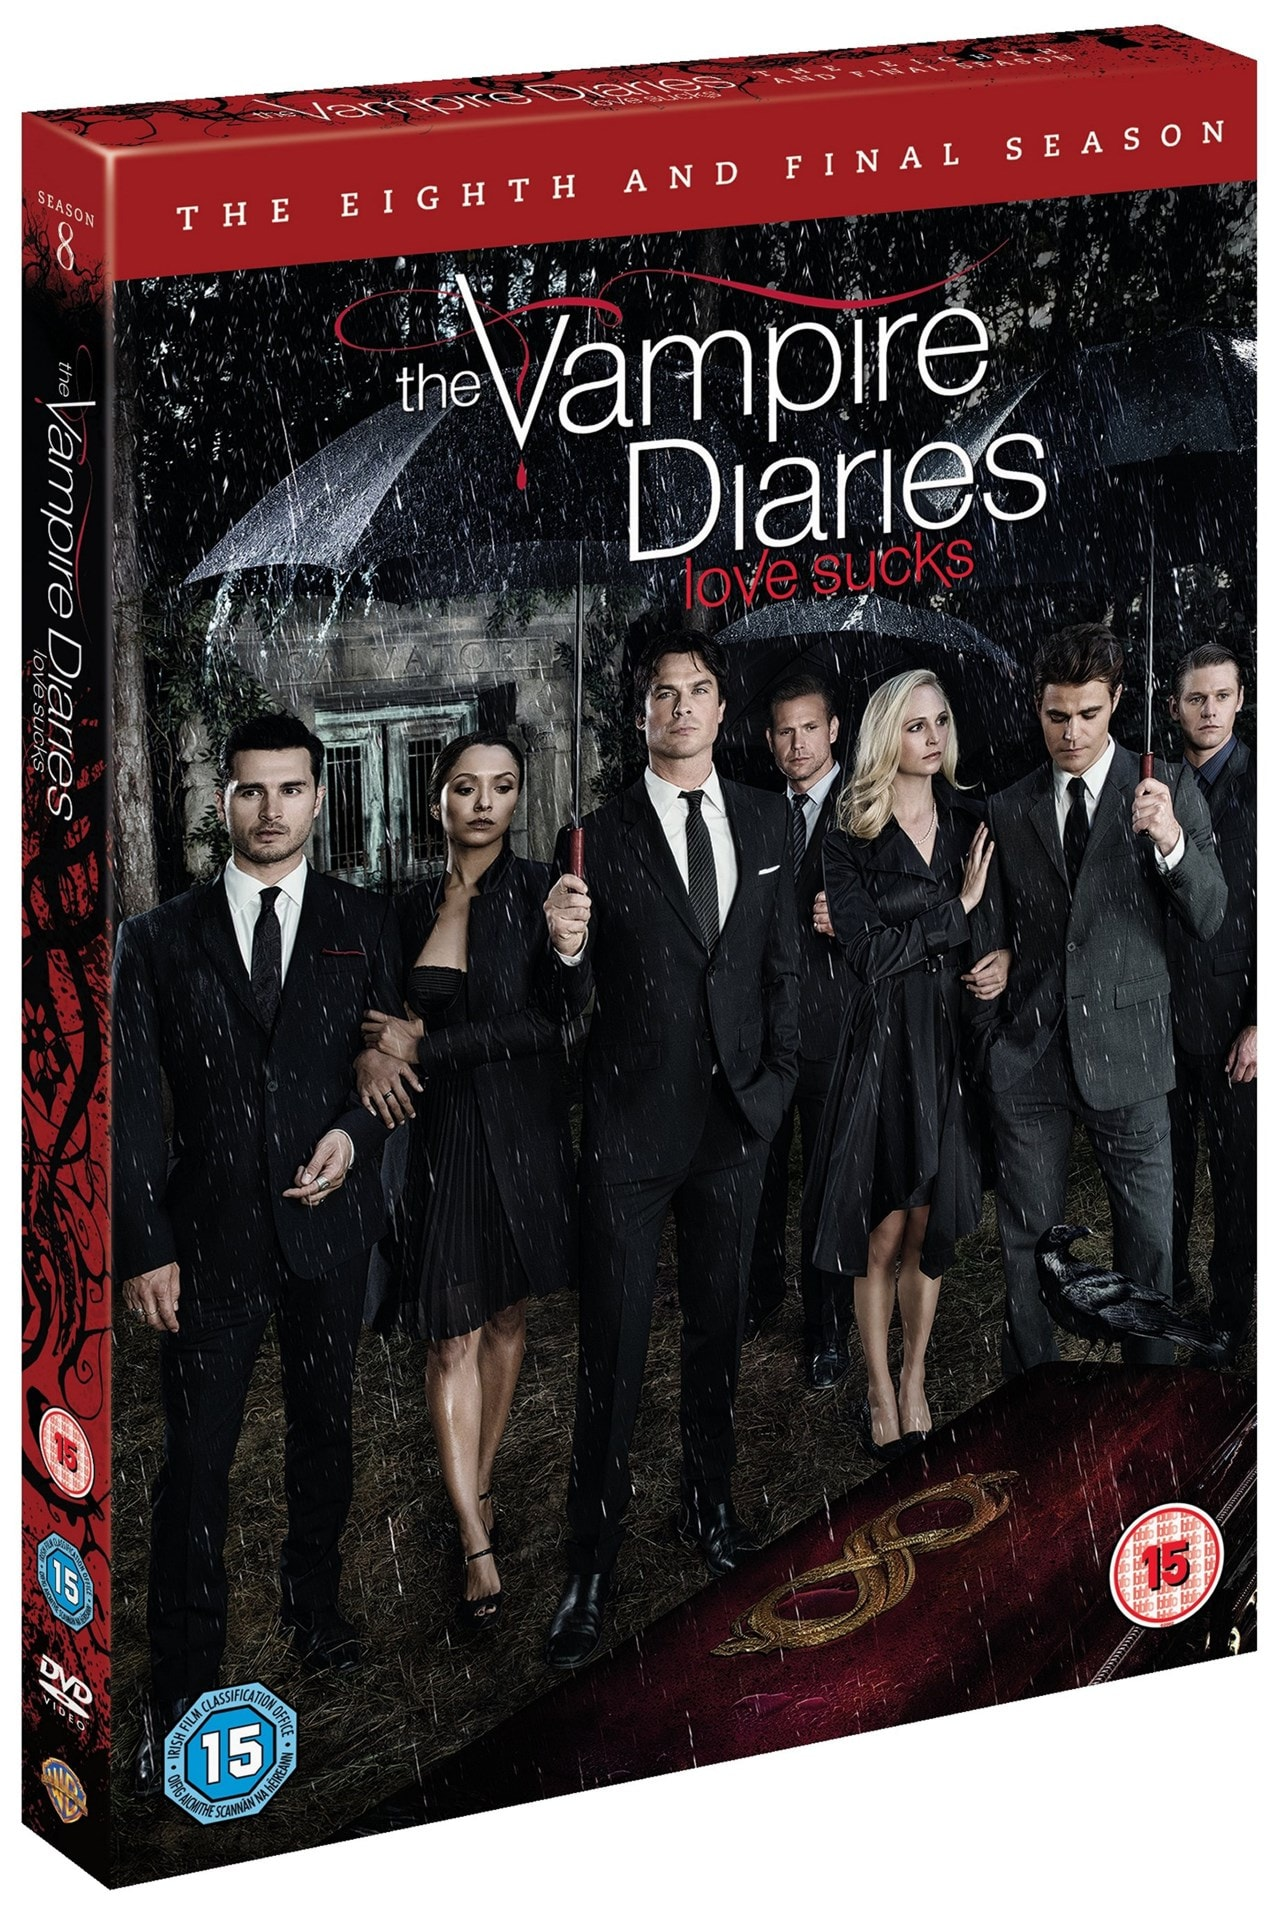 The Vampire Diaries: The Eighth and Final Season - 2